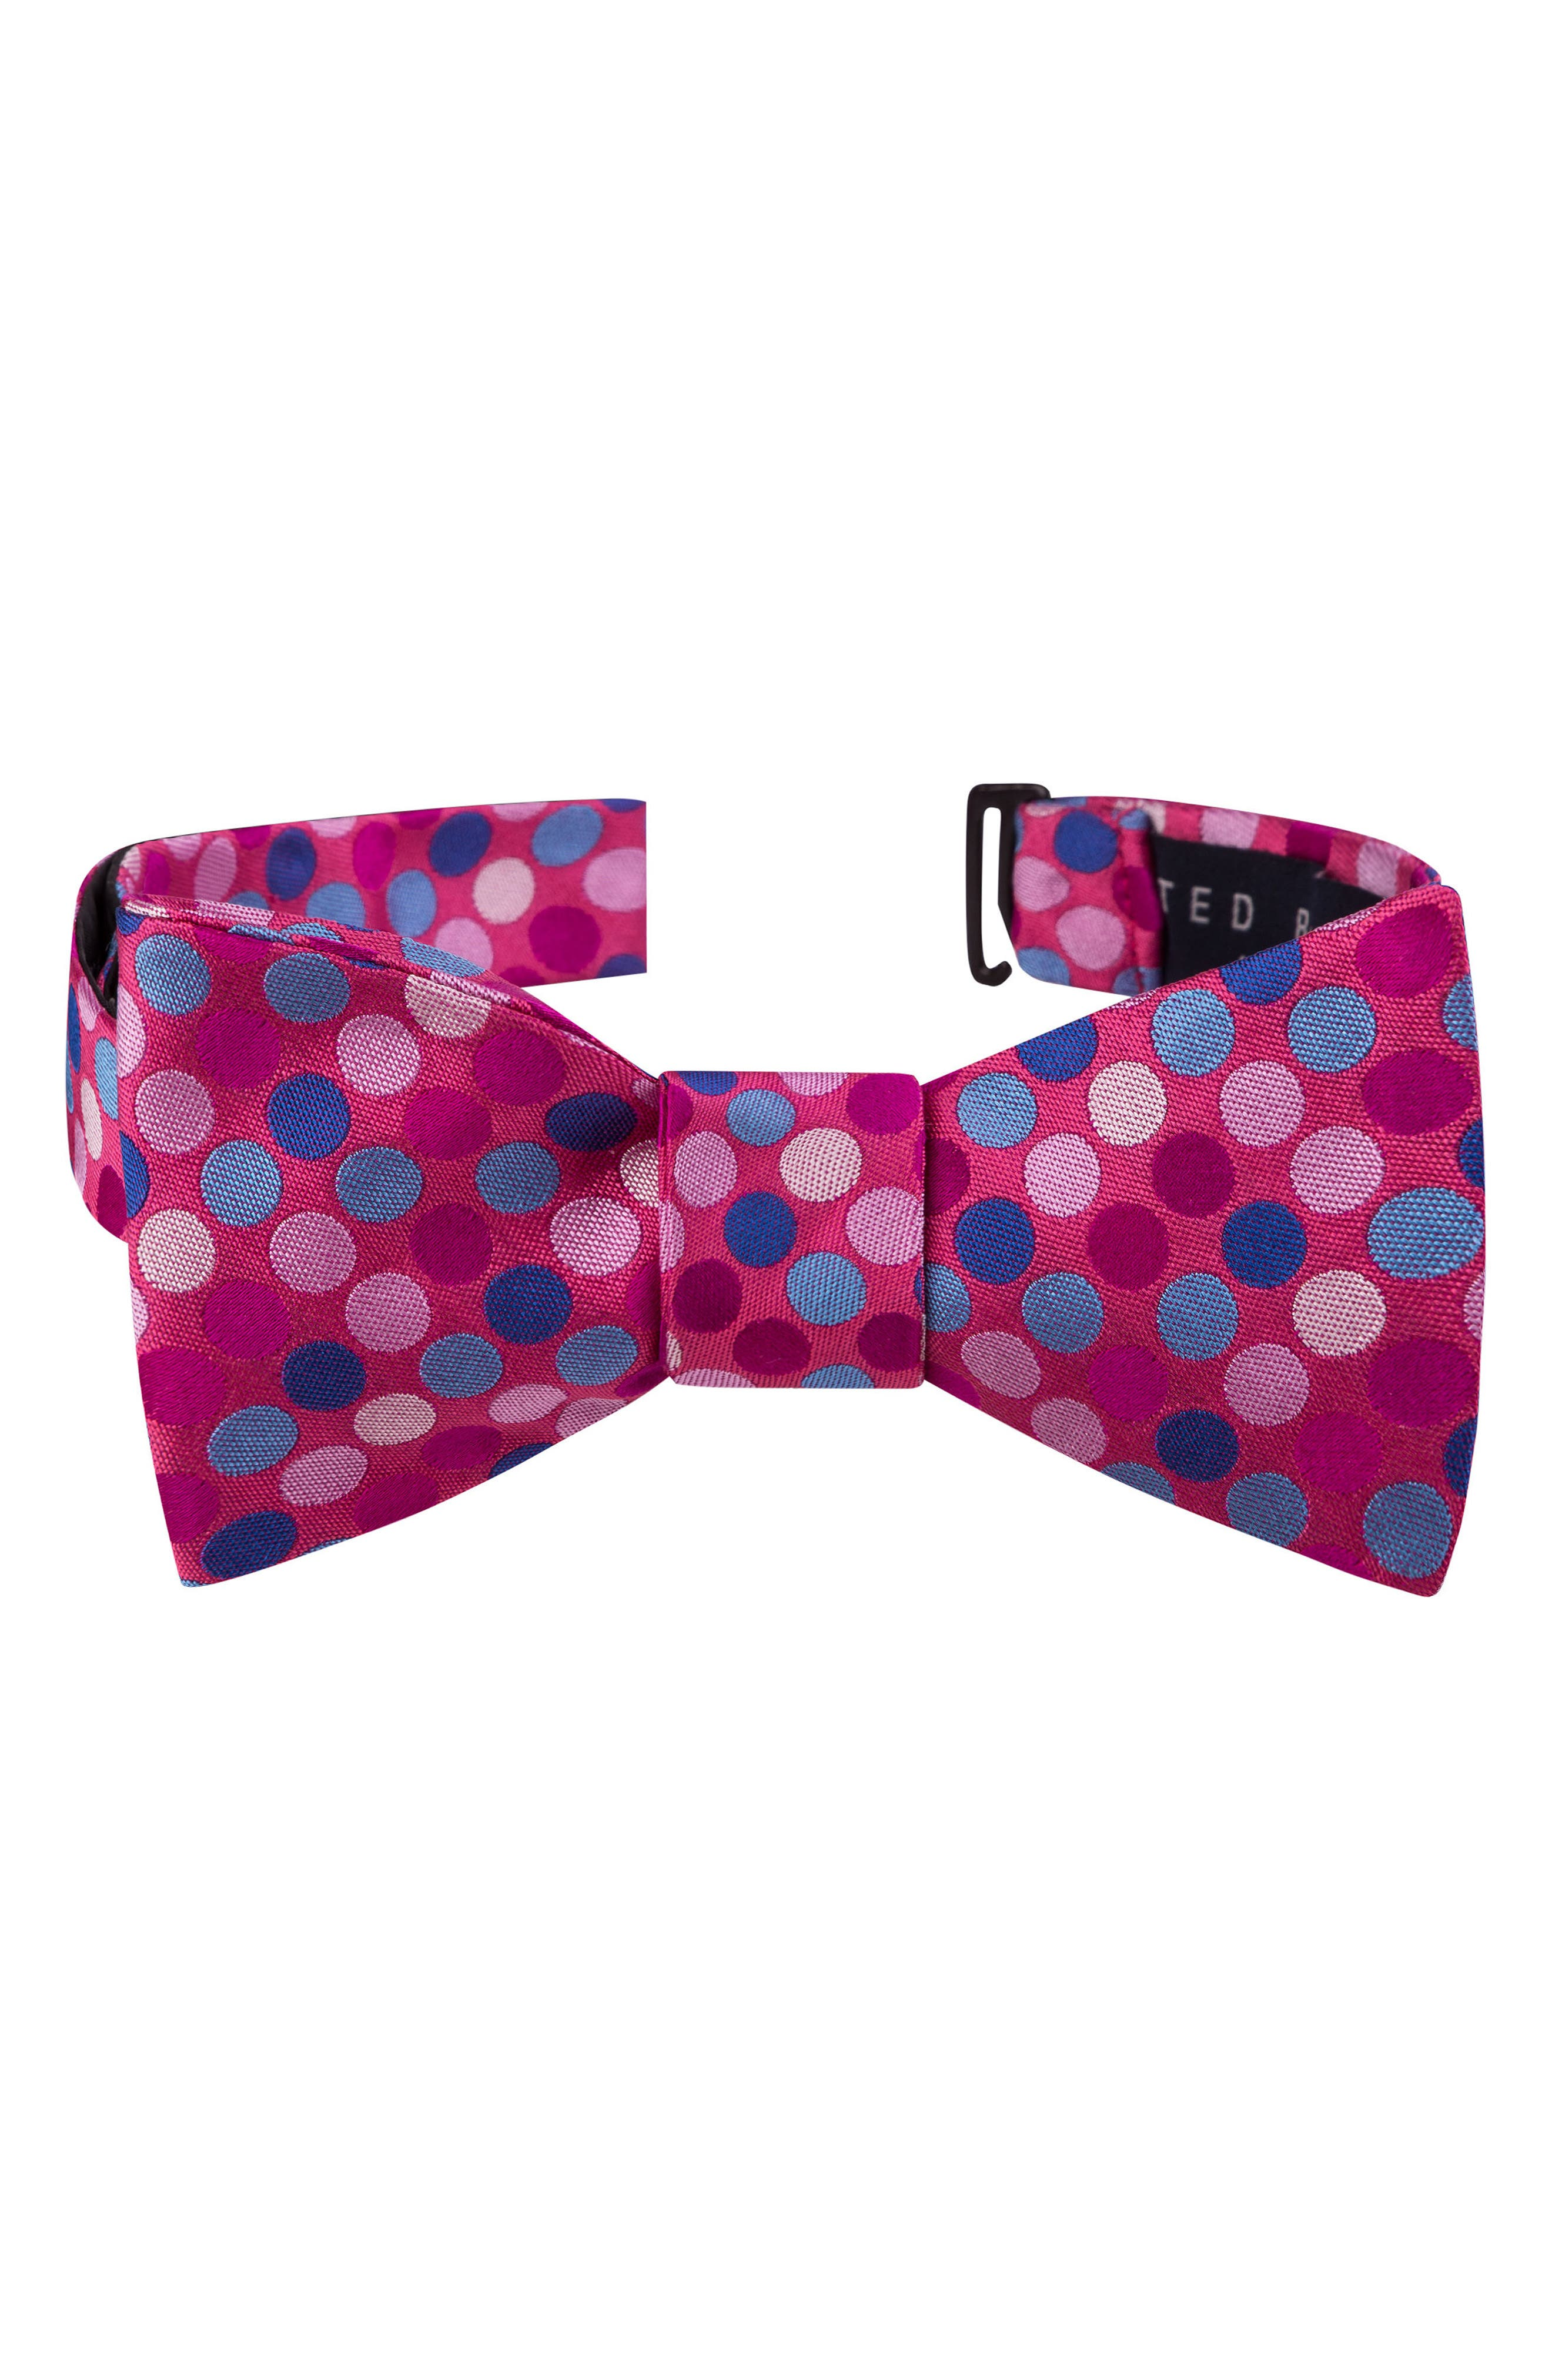 Ted Baker London Dot Silk Bow Tie